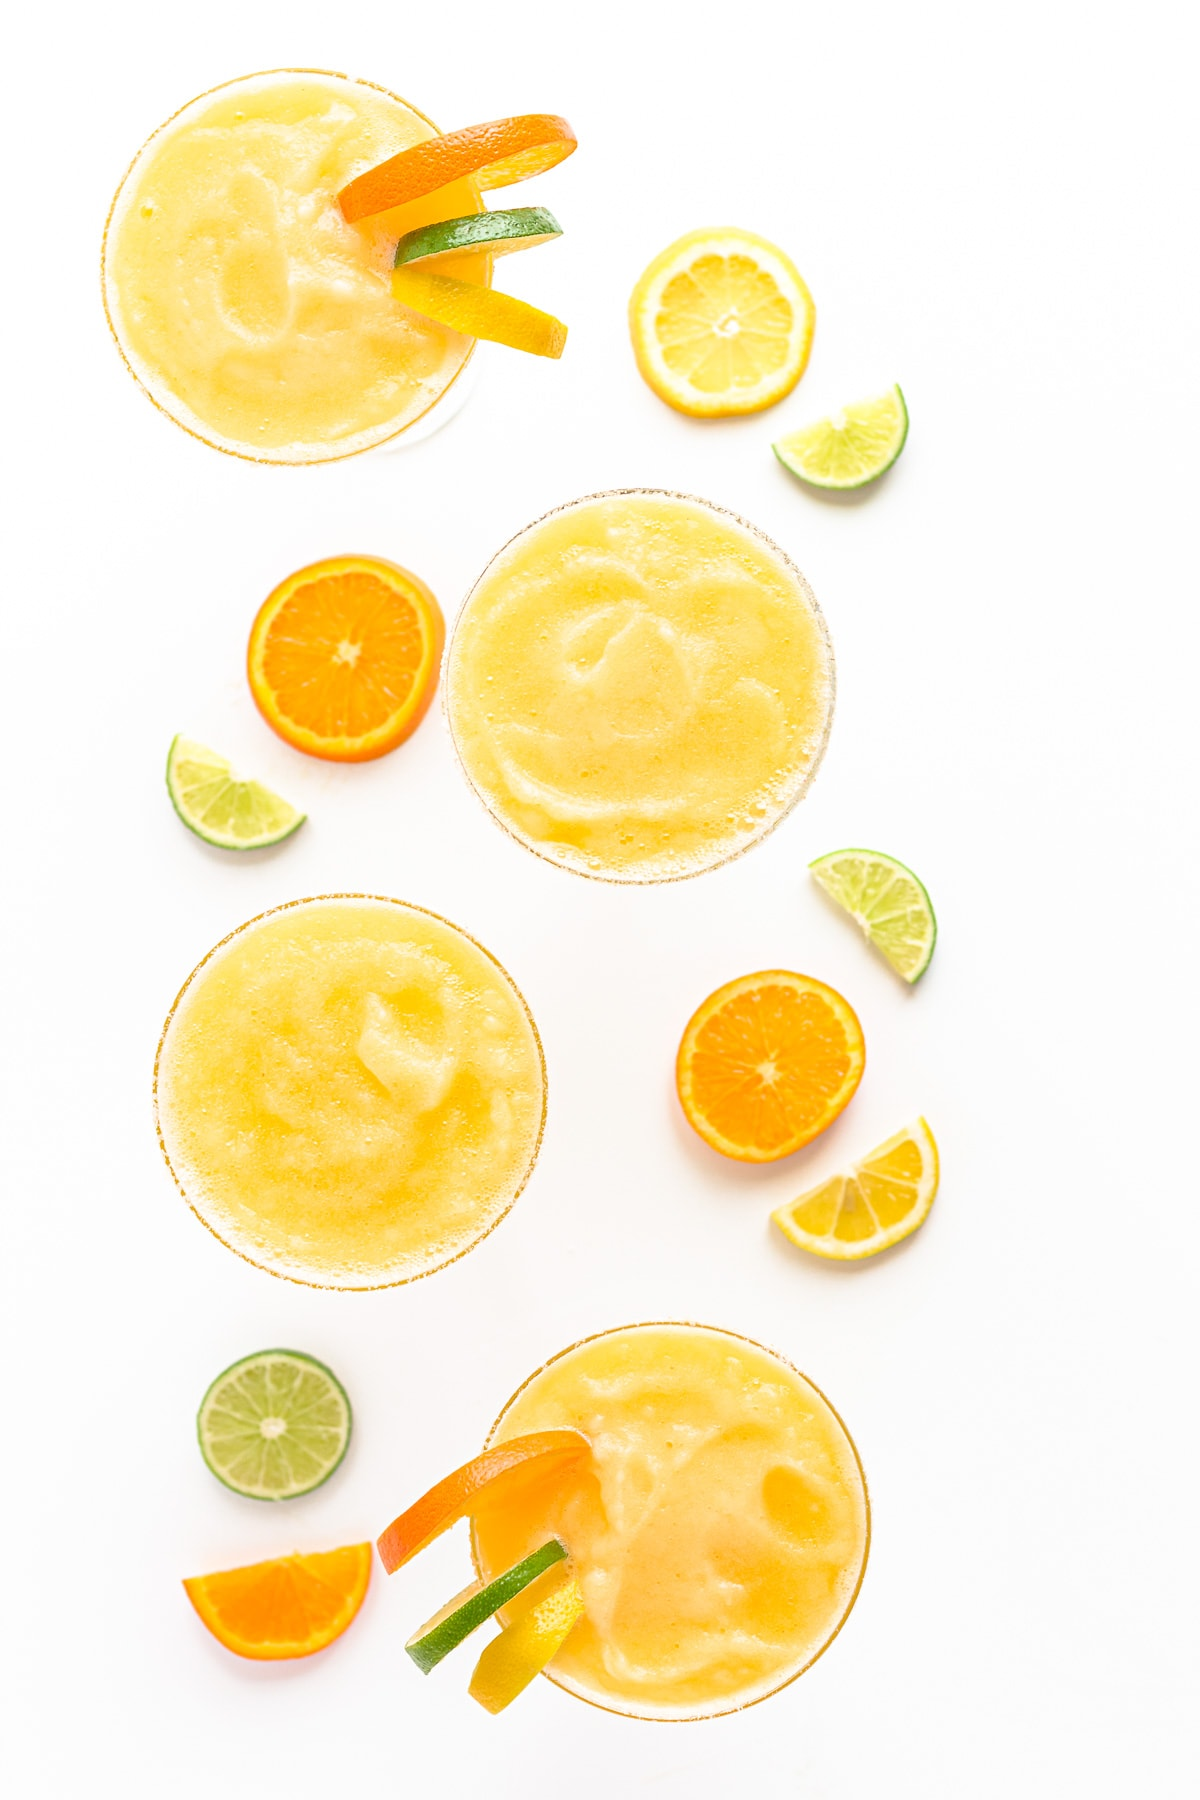 Overhead view of four citrus margaritas garnished with orange, lemon and lime slices.